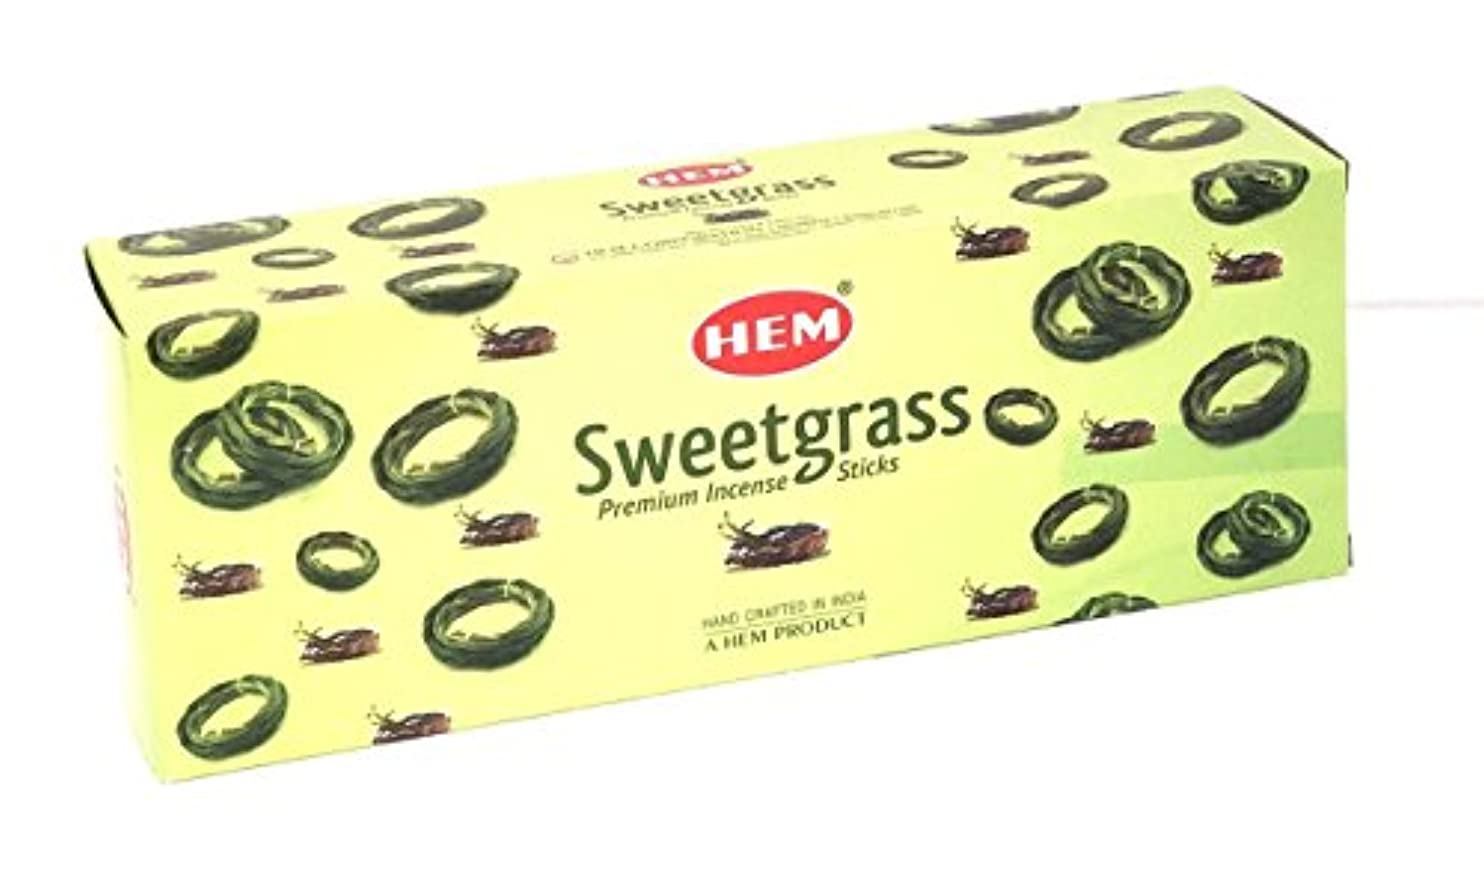 精査実質的に終了しました裾Sweetgrass Best Seller Incense Bulk 6 x 20スティック( 120 Sticks ) by 4quarters & More